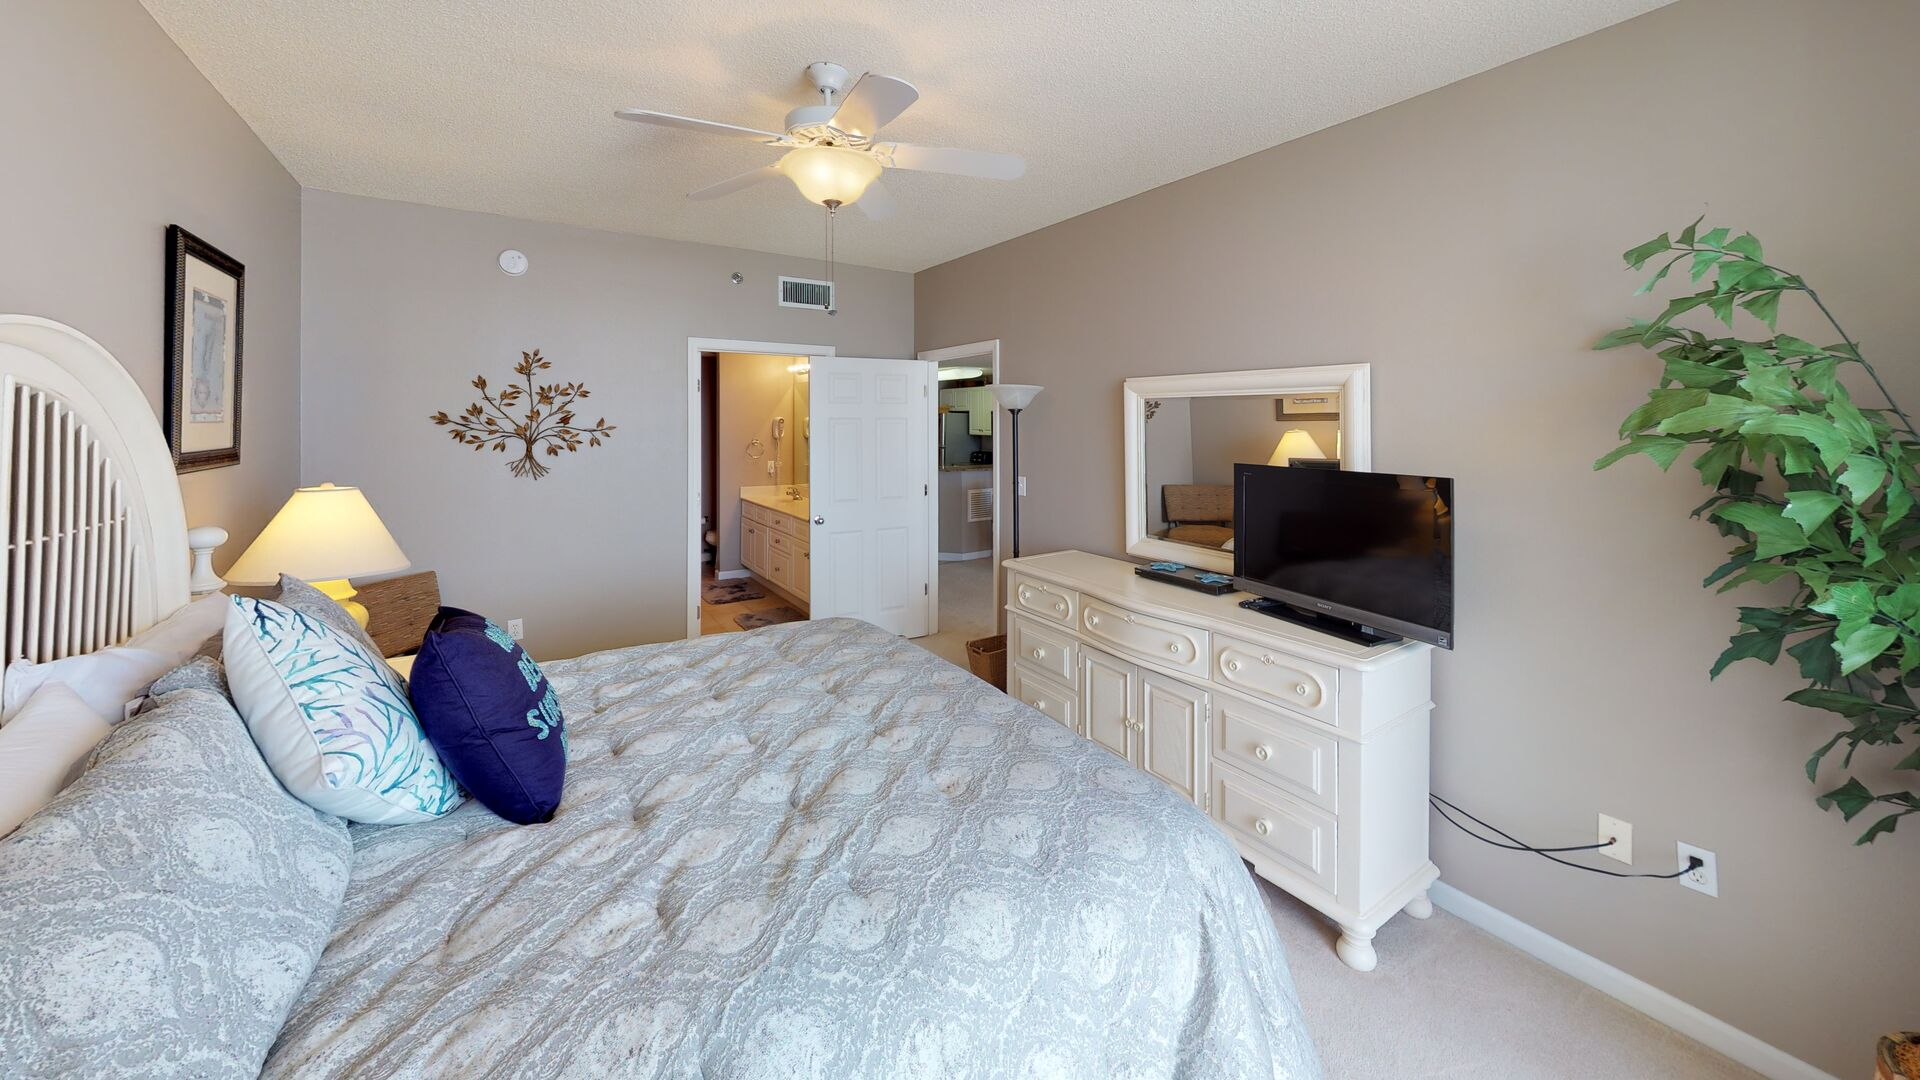 Ample Space in the Master Suite